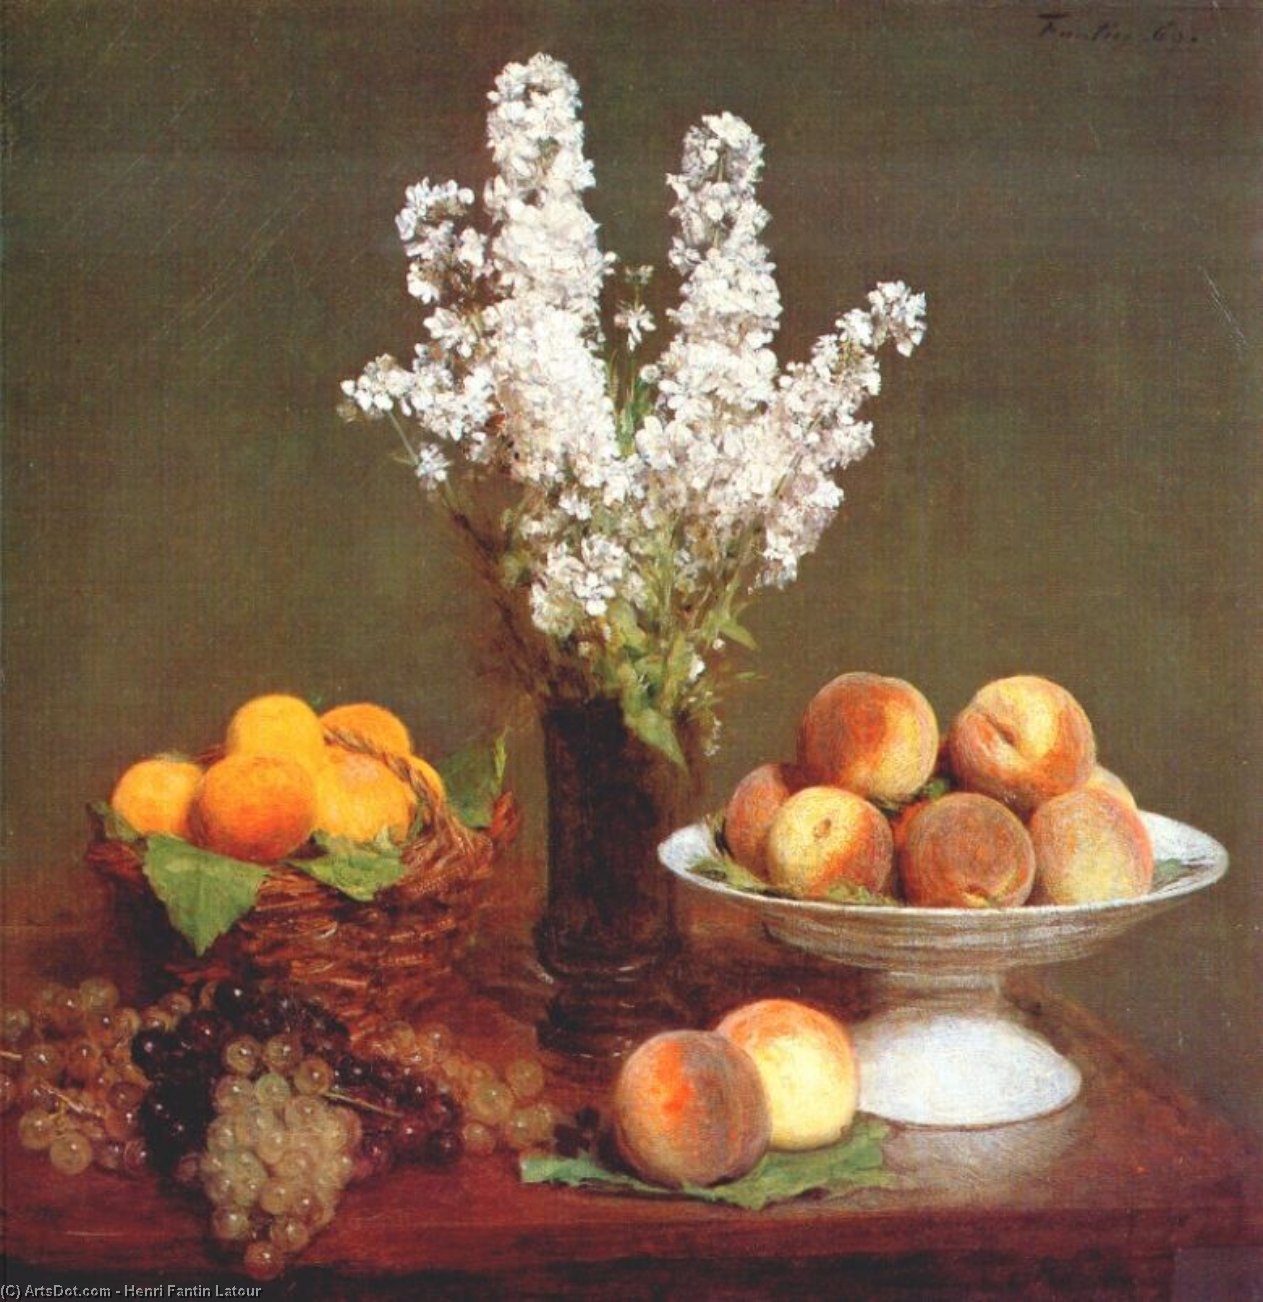 white rockets and fruit, 1869 by Henri Fantin Latour (1836-1904, France)